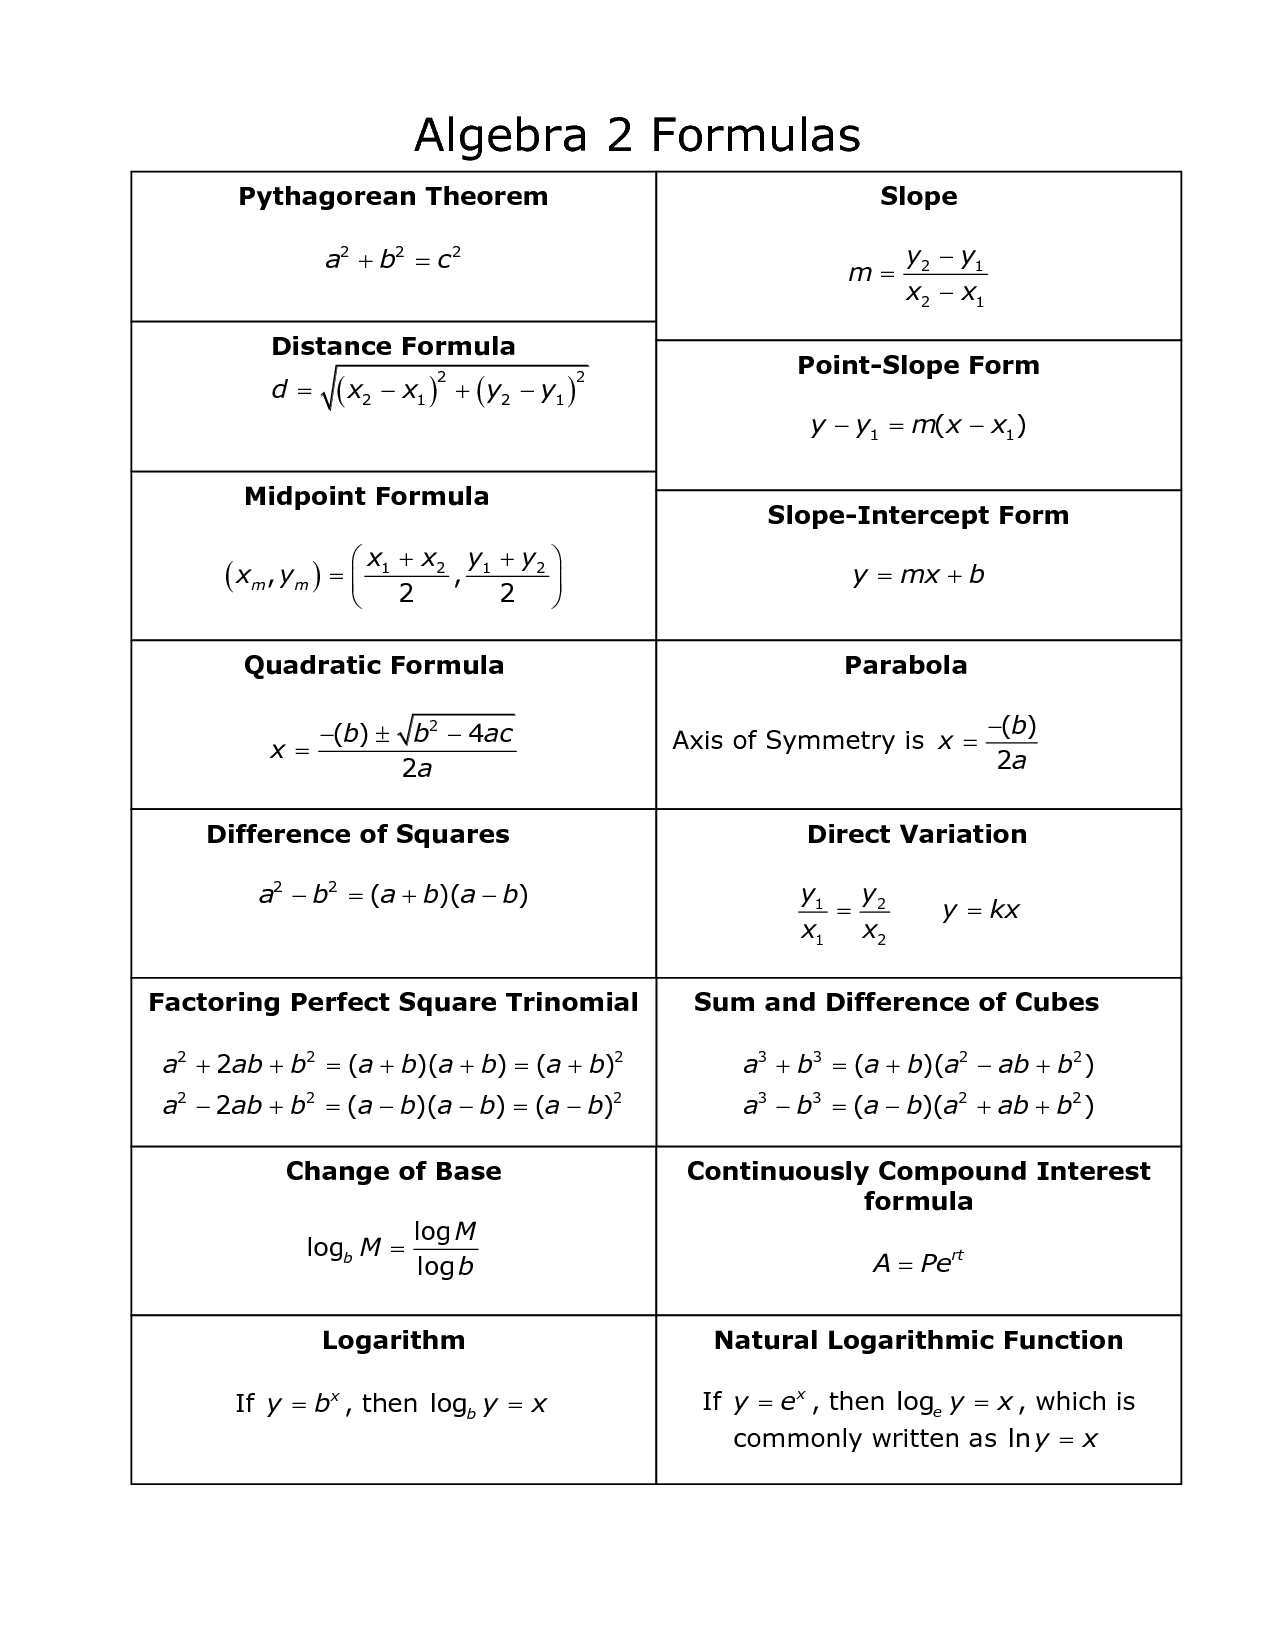 Pumpkin Advanced Algebra Worksheet